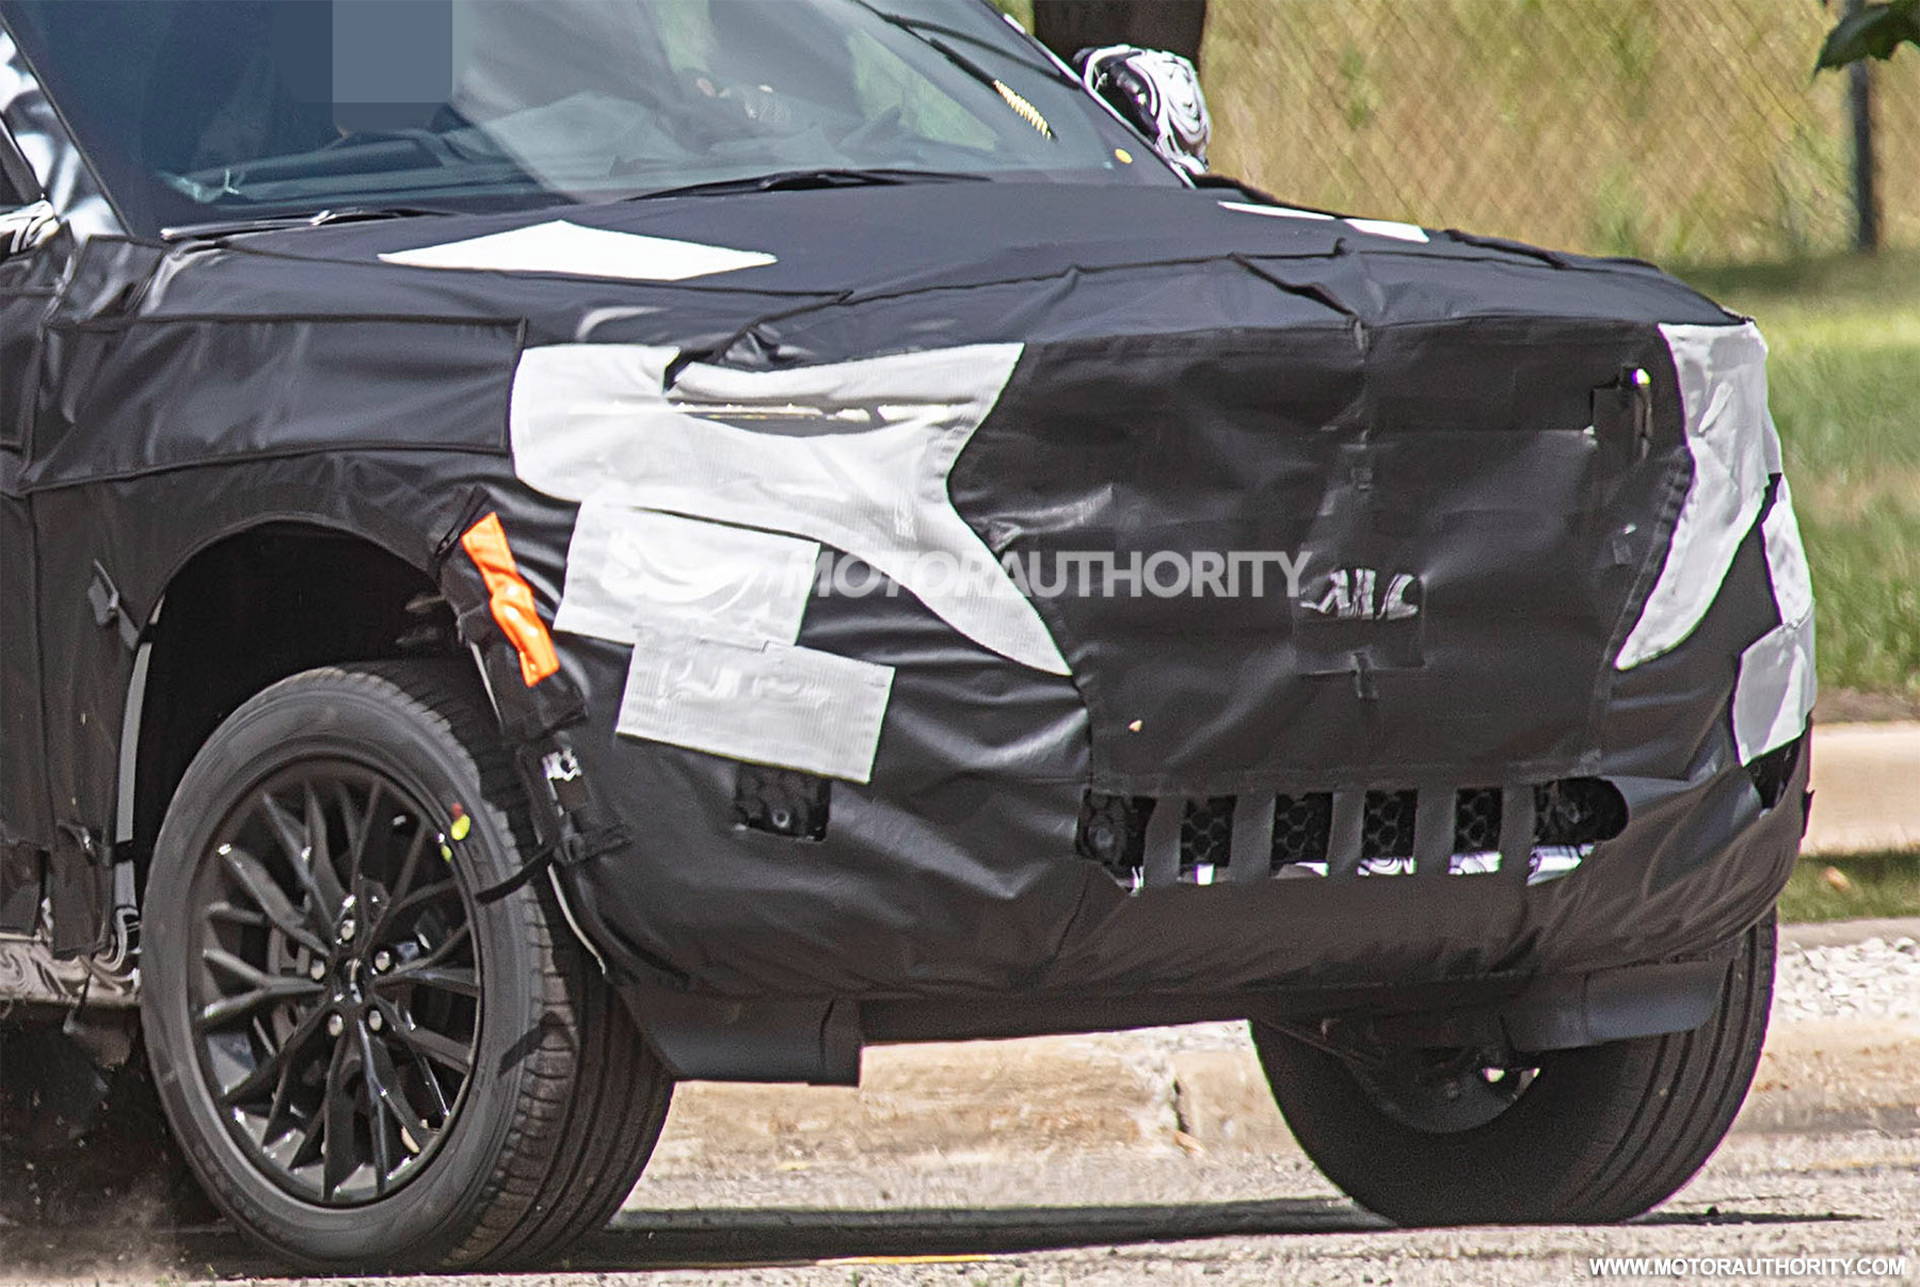 2021 - [Jeep] Grand Cherokee  - Page 2 2022-jeep-grand-cherokee-based-3-row-suv-spy-shots--photo-credit-s-baldauf-sb-medien_100754579_h